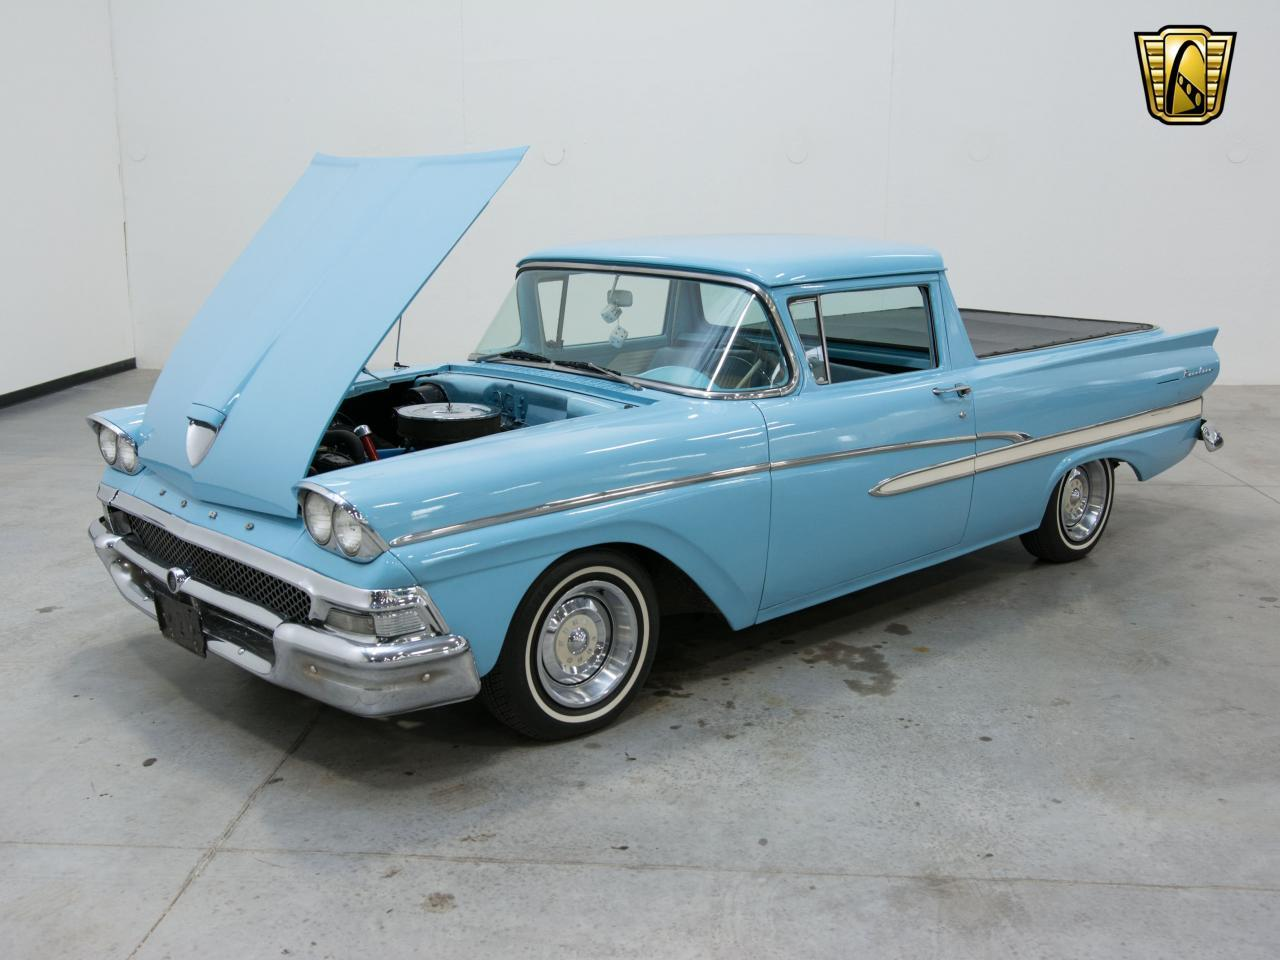 Large Picture of Classic '58 Ford Ranchero located in Kenosha Wisconsin - $20,995.00 - KH0V